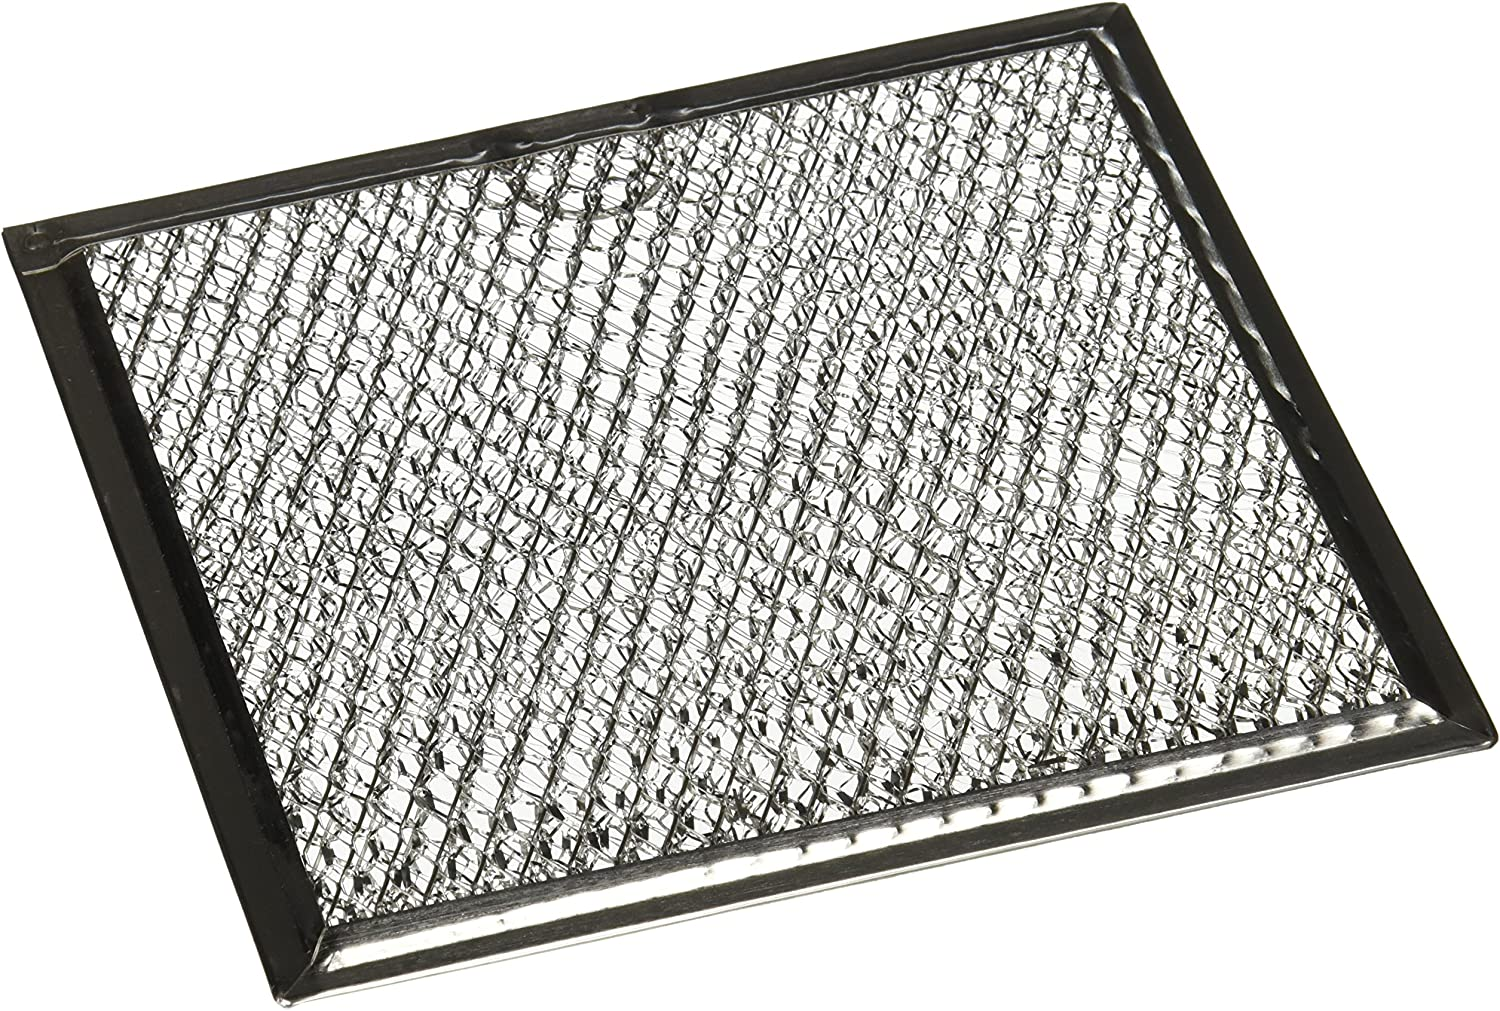 Genuine OEM WB02X11534 Grease Filter Microwave GE Kenmore New!: Home Improvement